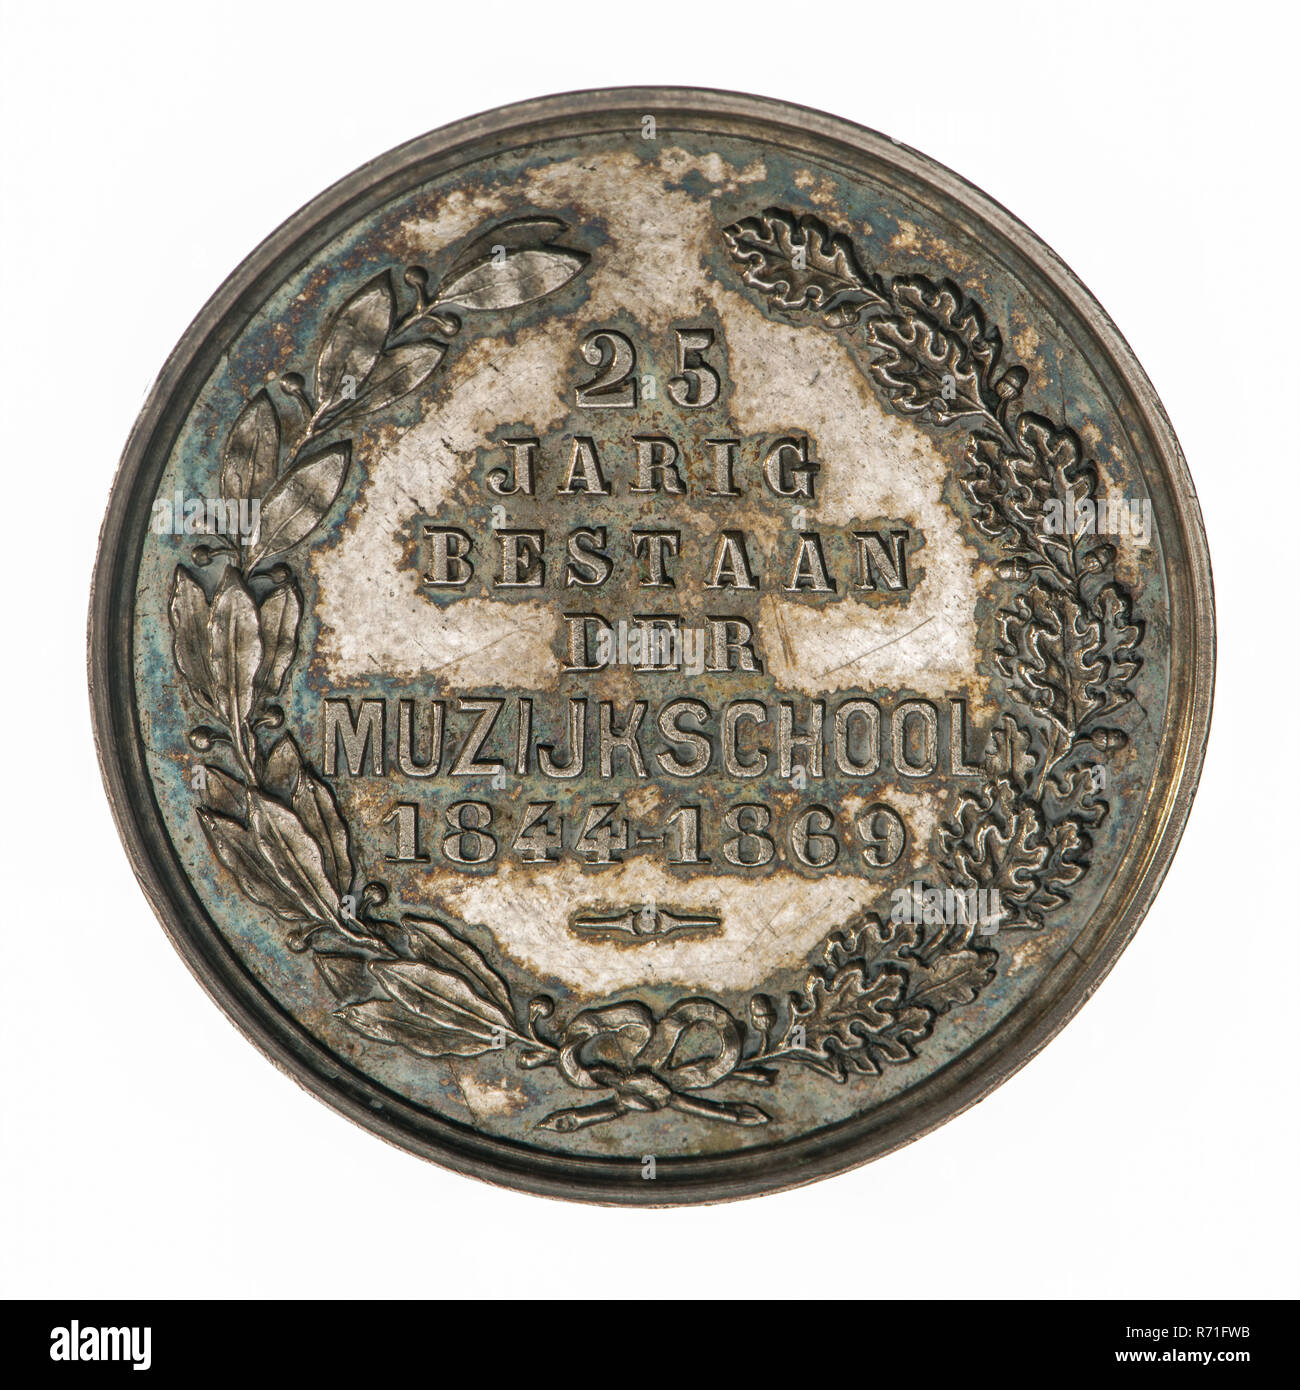 Medal on the 25th anniversary of the Music School in Rotterdam, penning visual material silver, wreath of bonded oak and laurel branch, 25 YEAR EXISTENCE OF THE MUSICAL SCHOOL 1844 - 1869 (in the field) music muziekschool Rotterdam Stock Photo